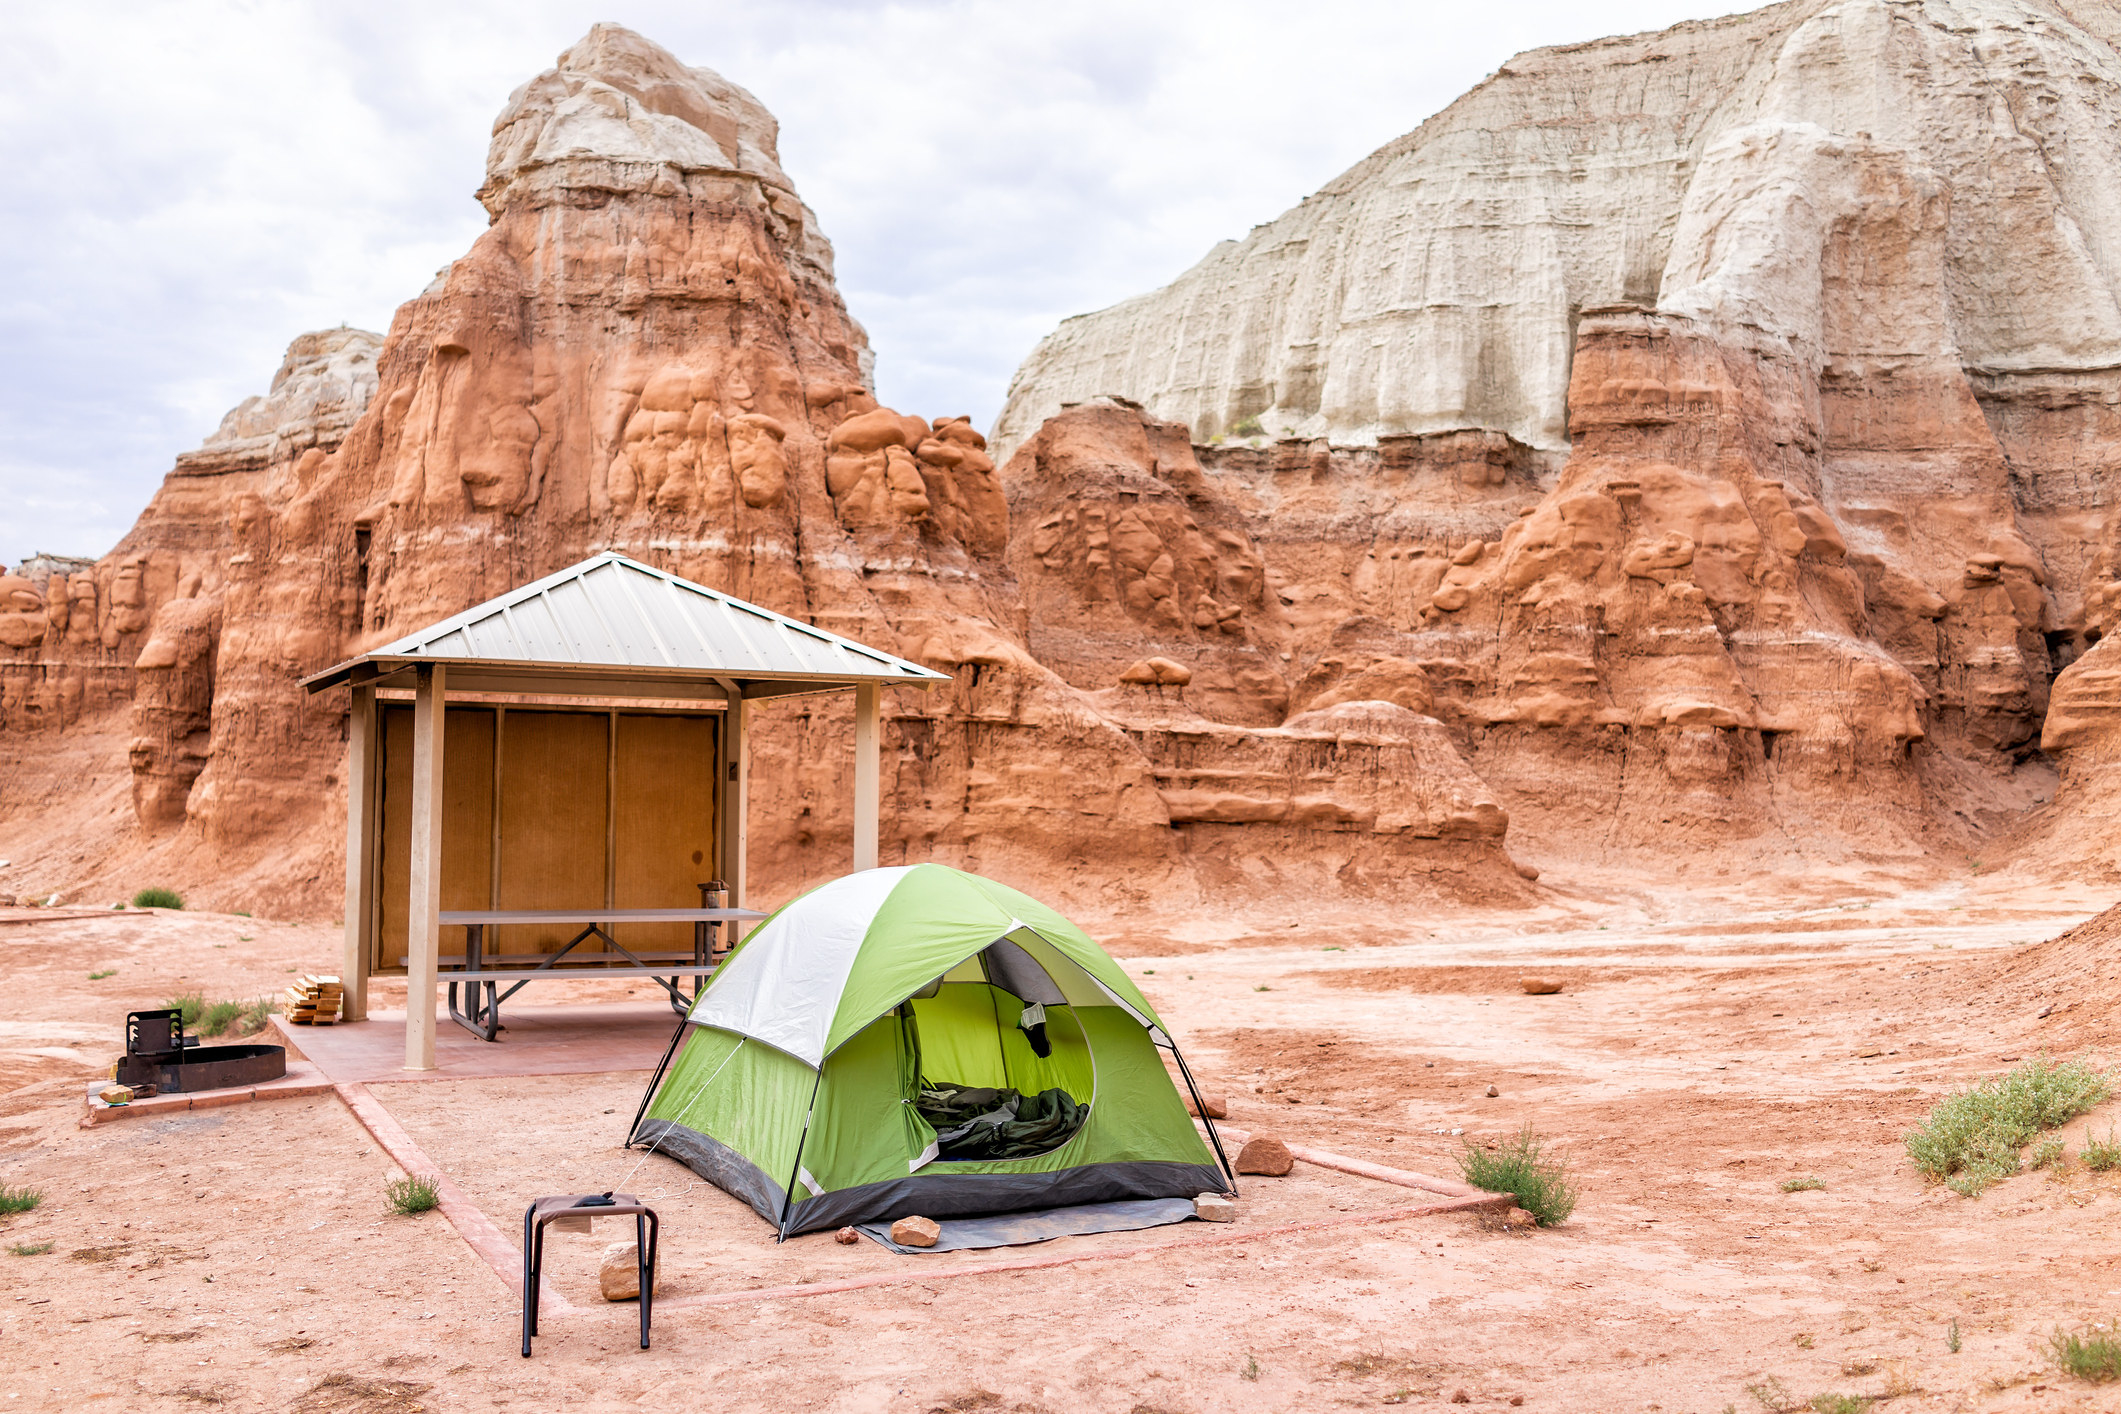 a tent in a marked camp site in Goblin Valley State Park, with white and red layers of sandstone rock formations in the background